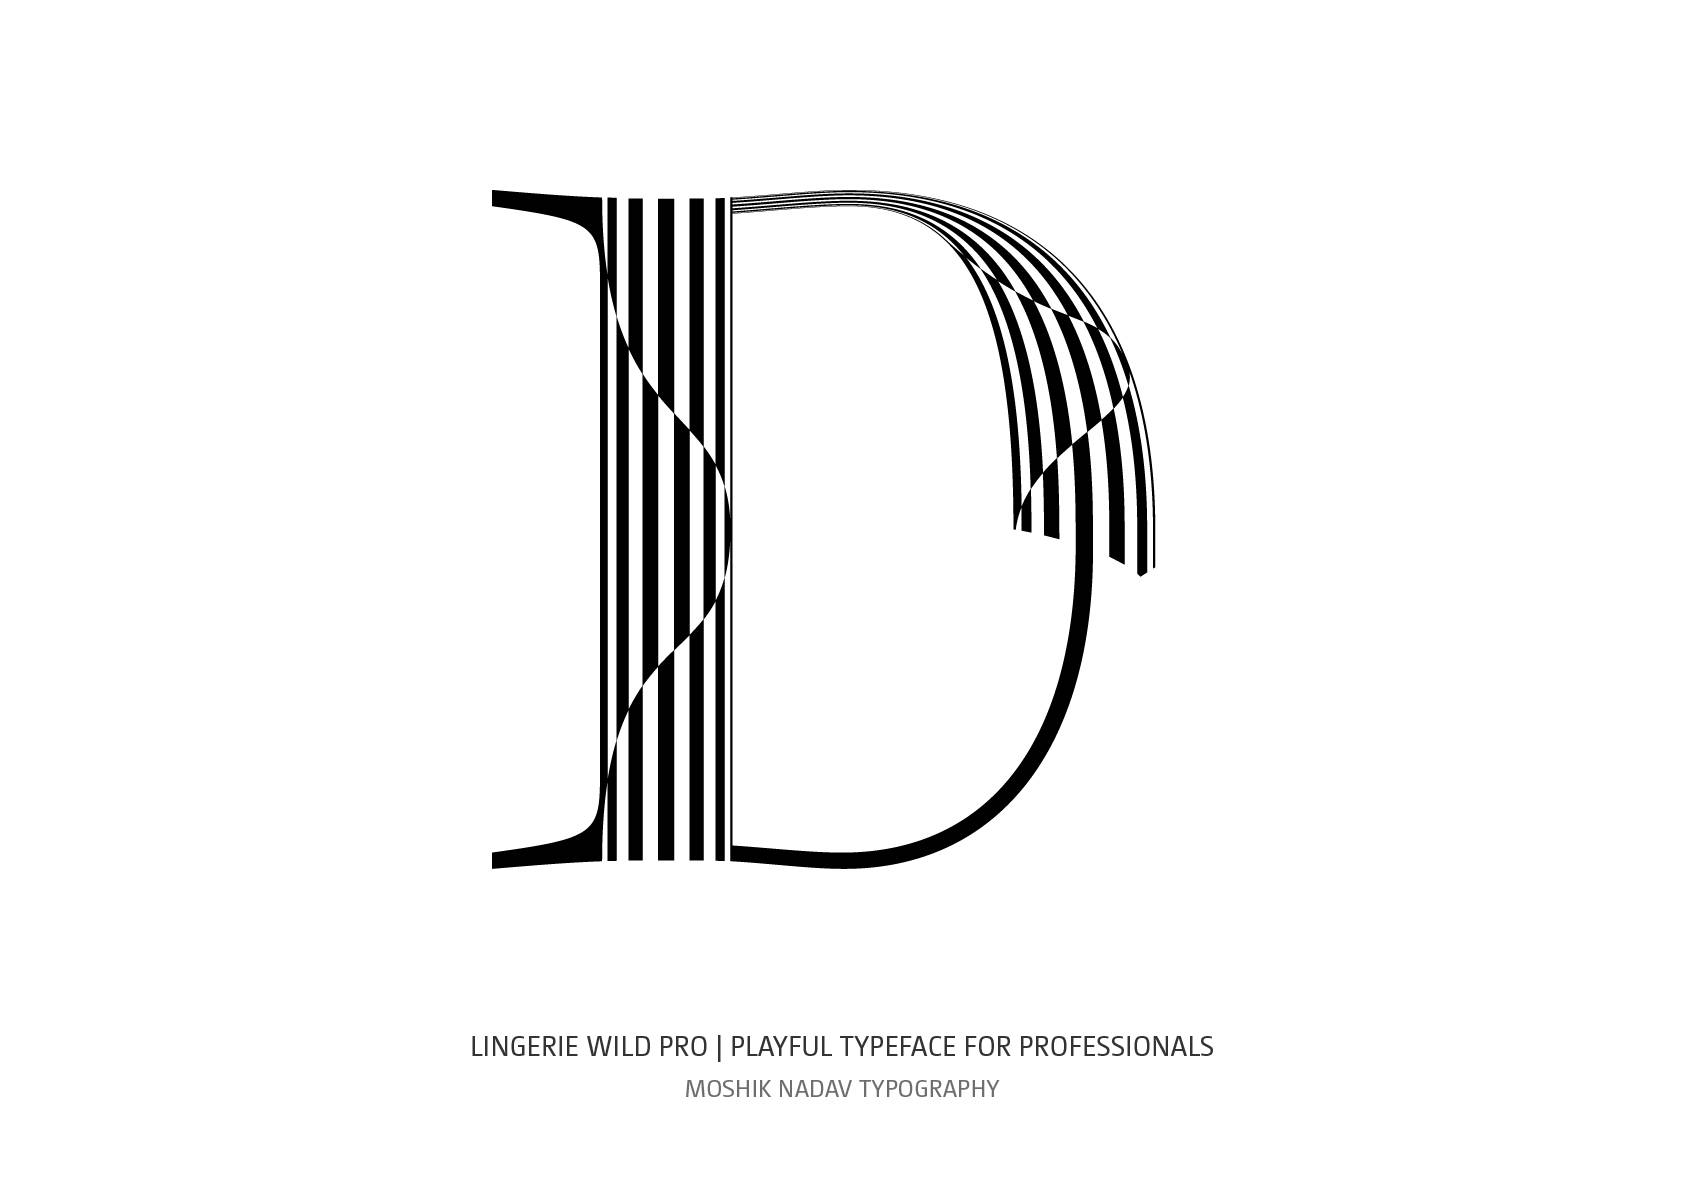 Uppercase D designed for making cool logos